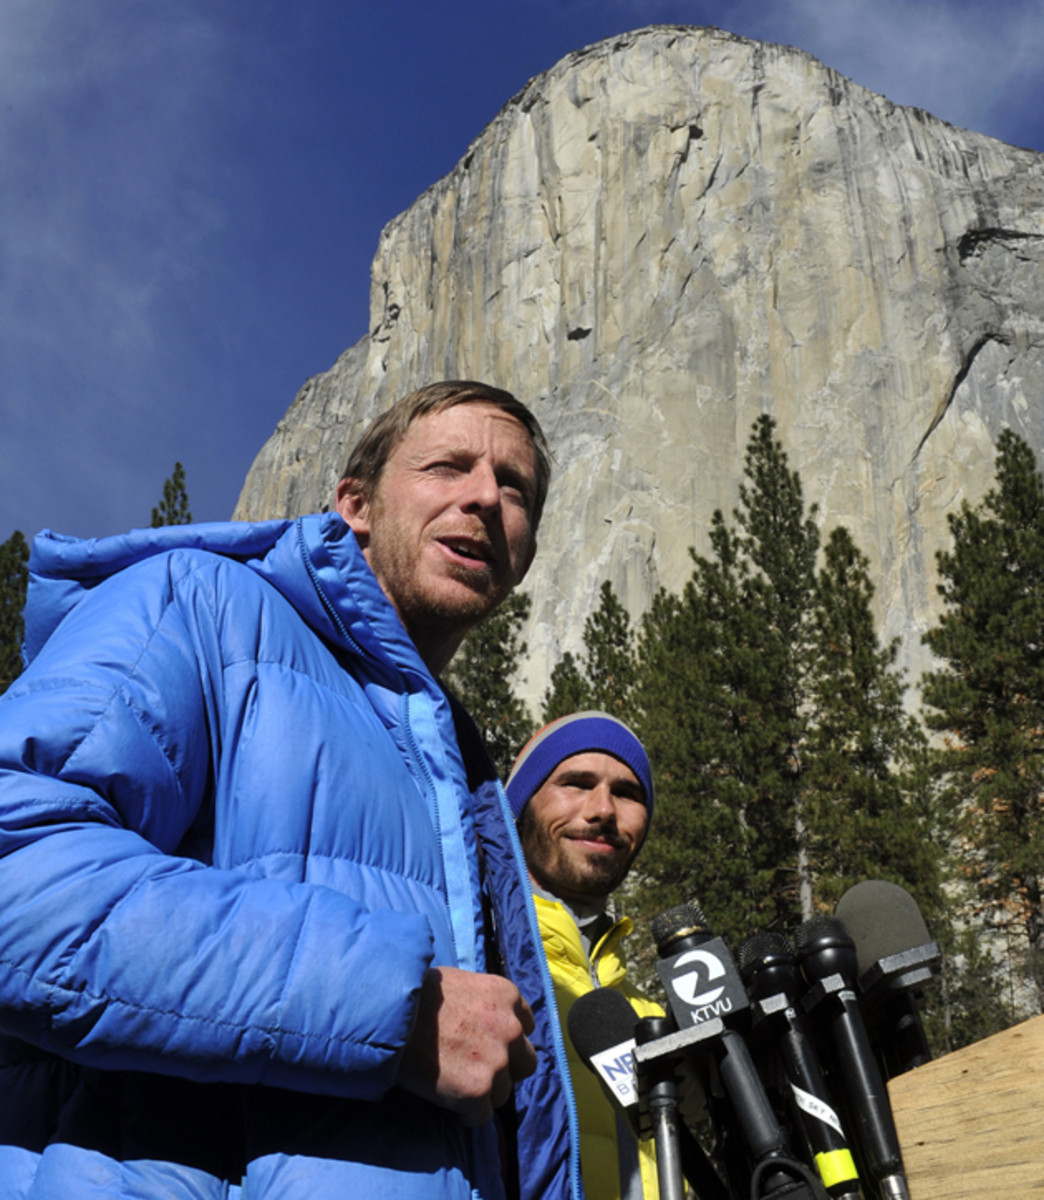 Caldwell and Jorgeson with El Capitan in the background after they completed 19 days of free-climbing.